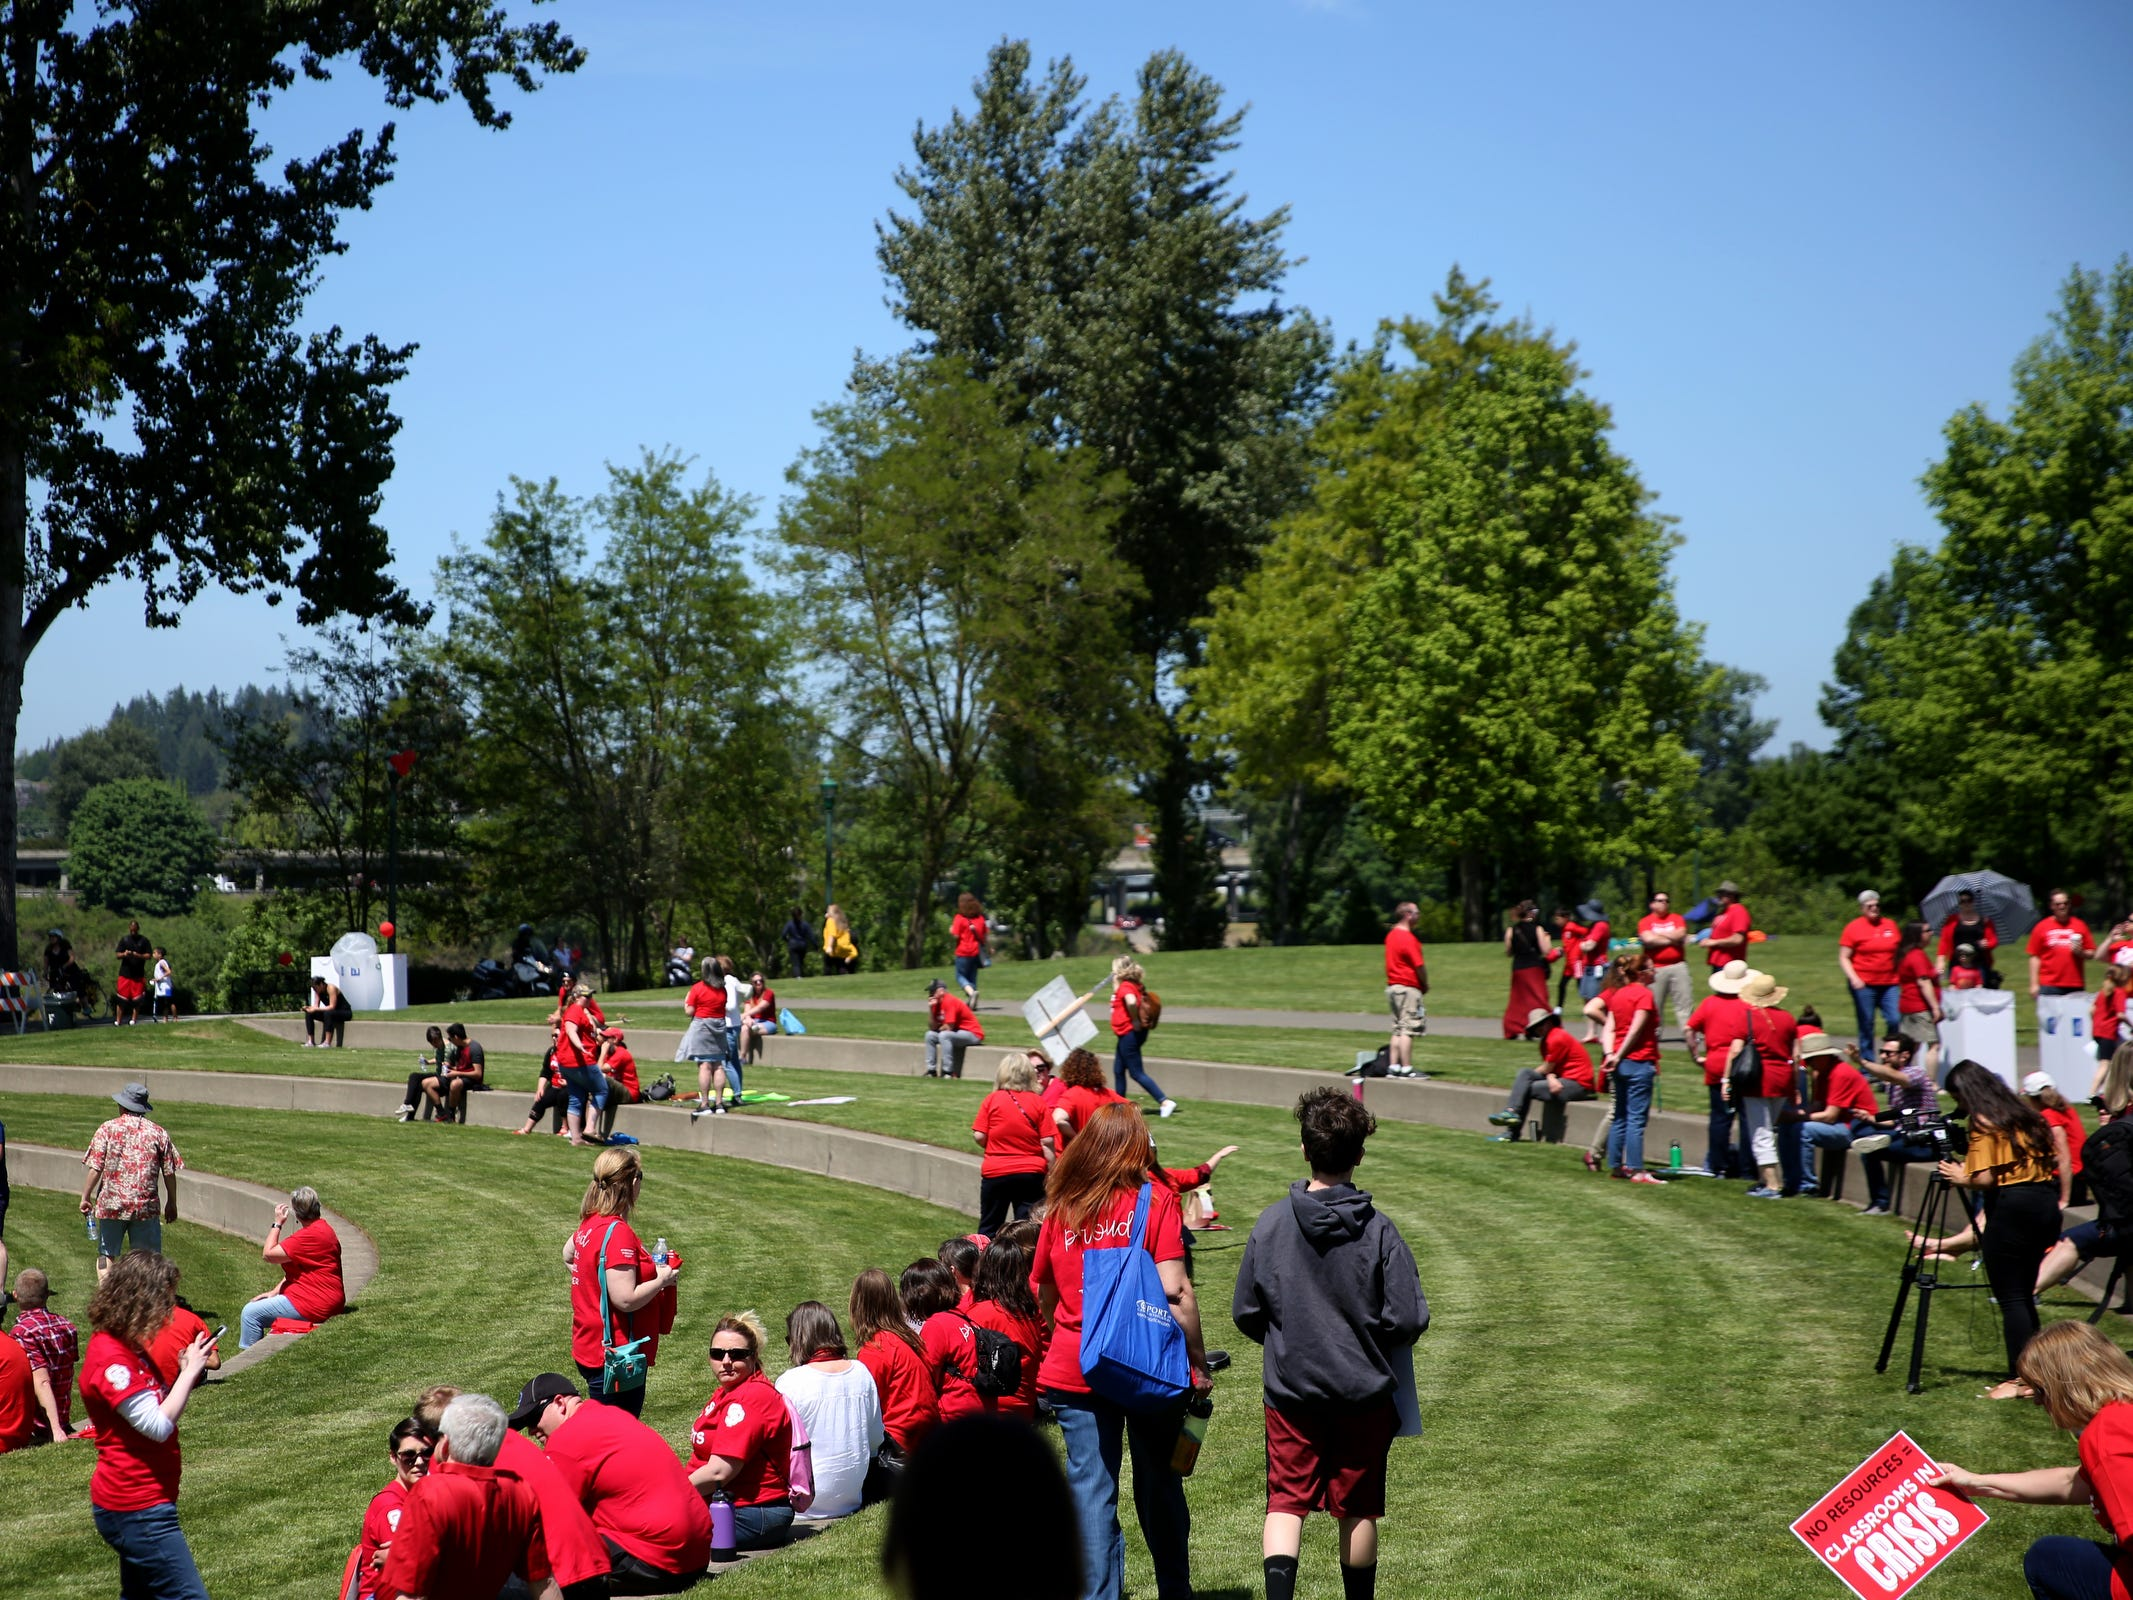 Hundreds of teachers and education activists rally for a day of action starting at Riverfront Park in Salem on May 8, 2019. Schools across Oregon closed early or were closed for the day as teachers walked out to demand more school funding to address large class sizes, low graduation rates and other concerns.